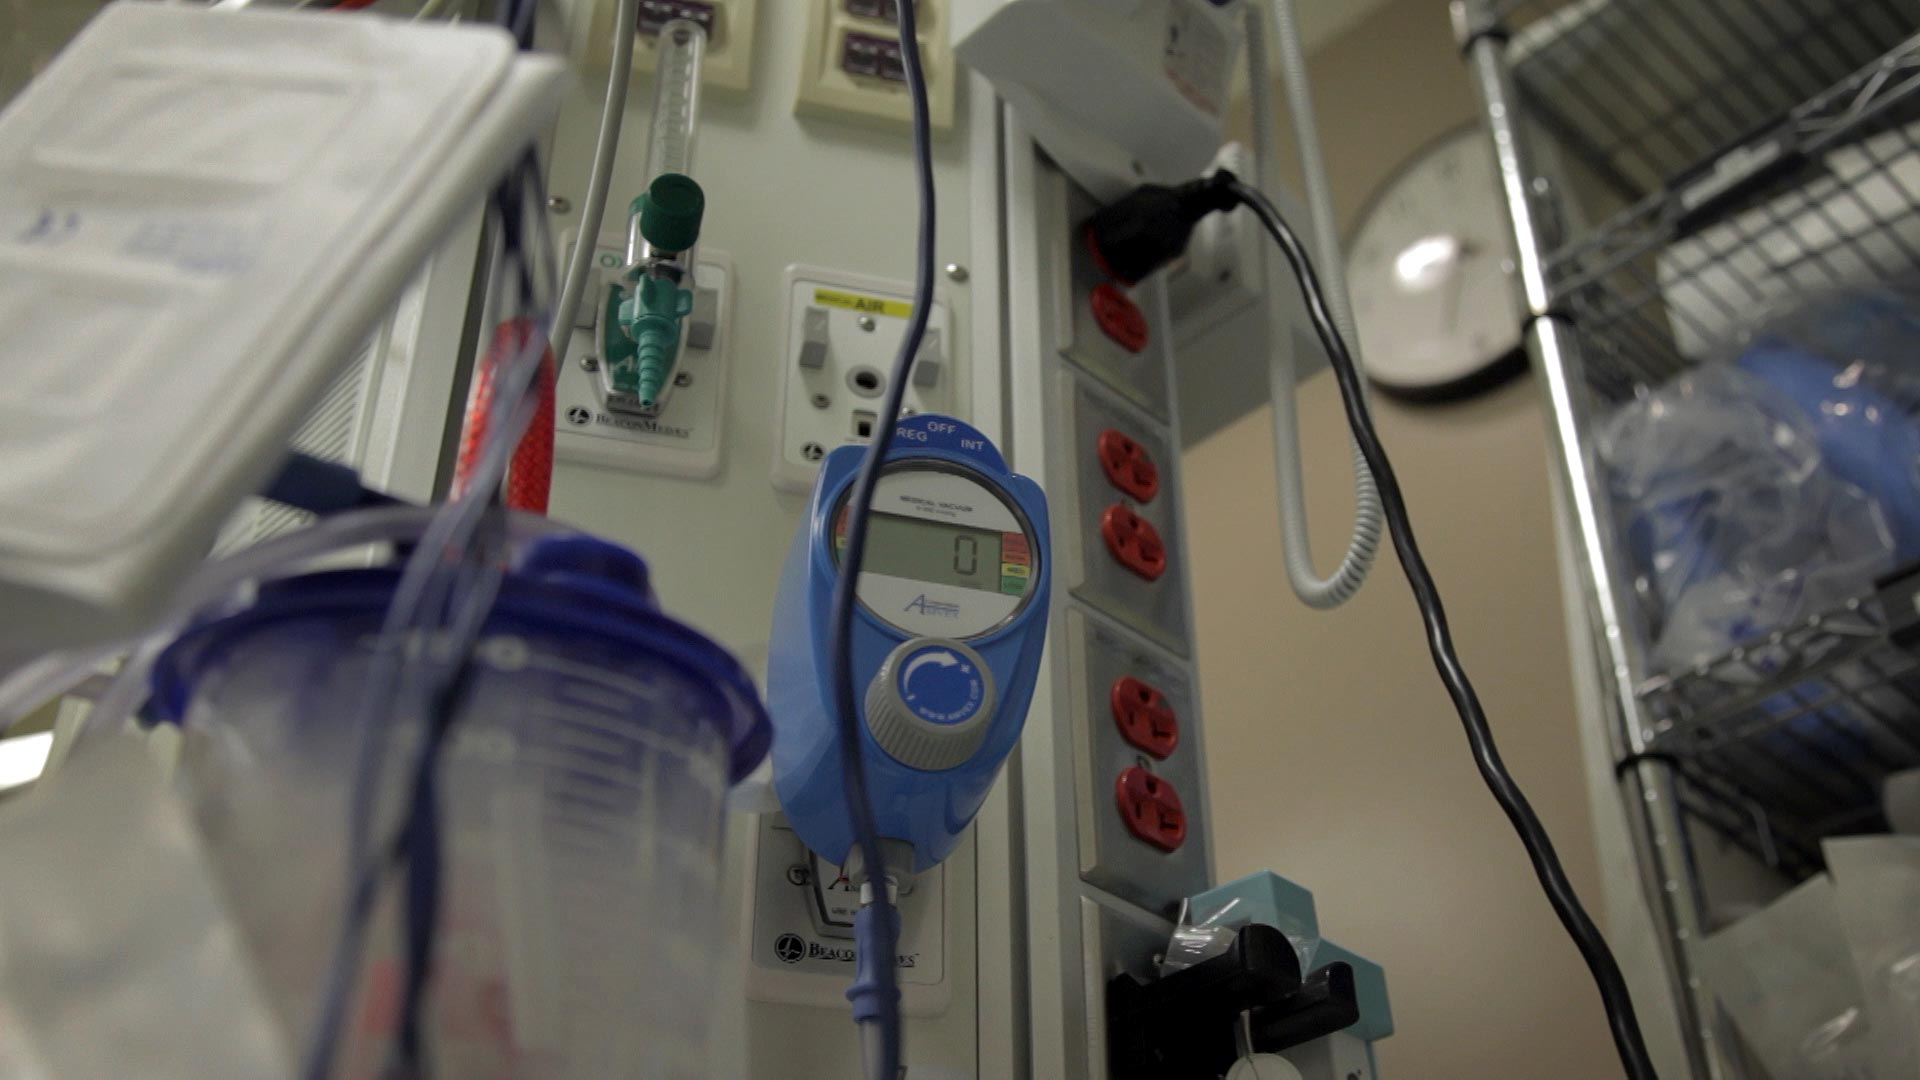 File image of equipment in a trauma room at a hospital in Tucson.